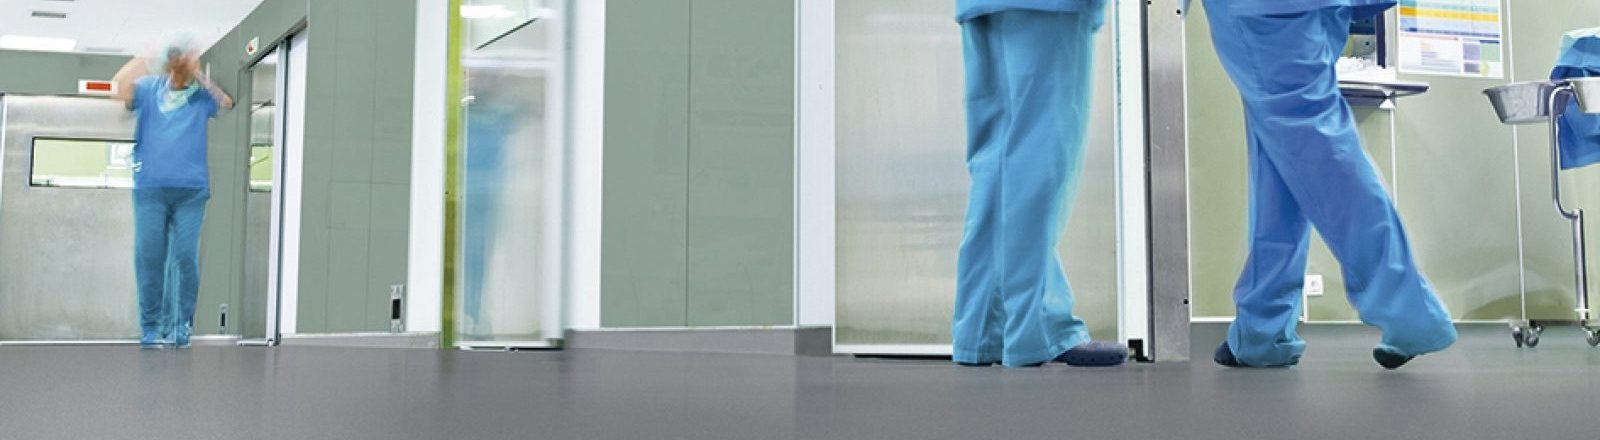 Altro Whiterock Installers Hygienic Wall Cladding